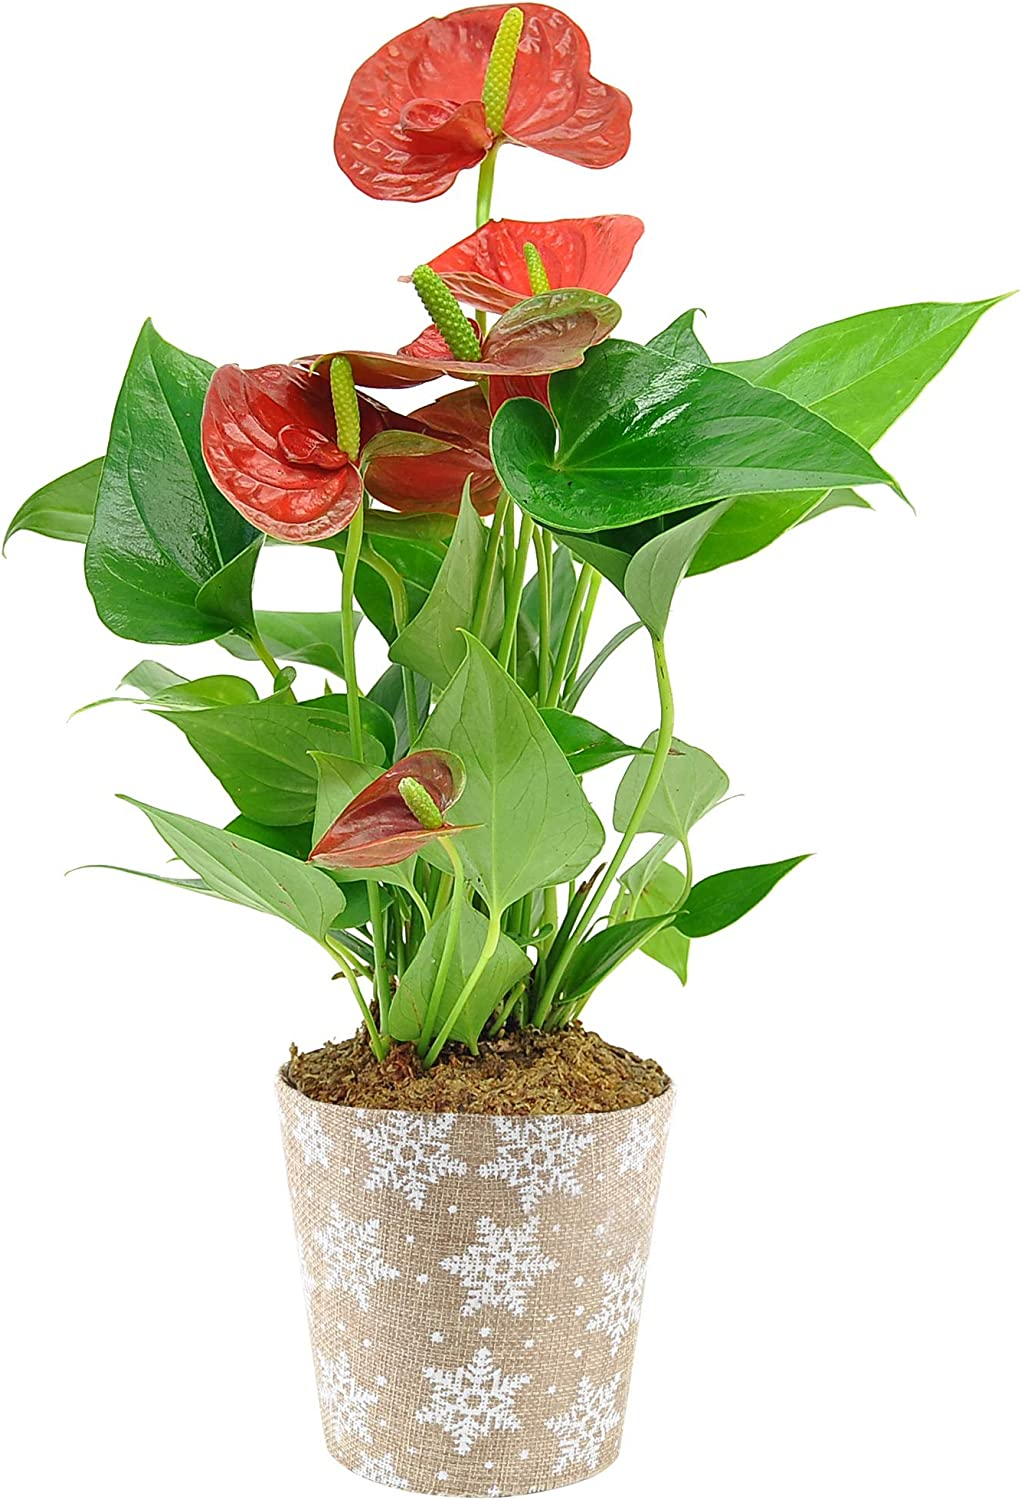 Costa Farms Live Anthurium Indoor Plant in Premium Burlap Planter, Candy Cane Pick, 12 Inches Tall, Christmas or Holiday Décor